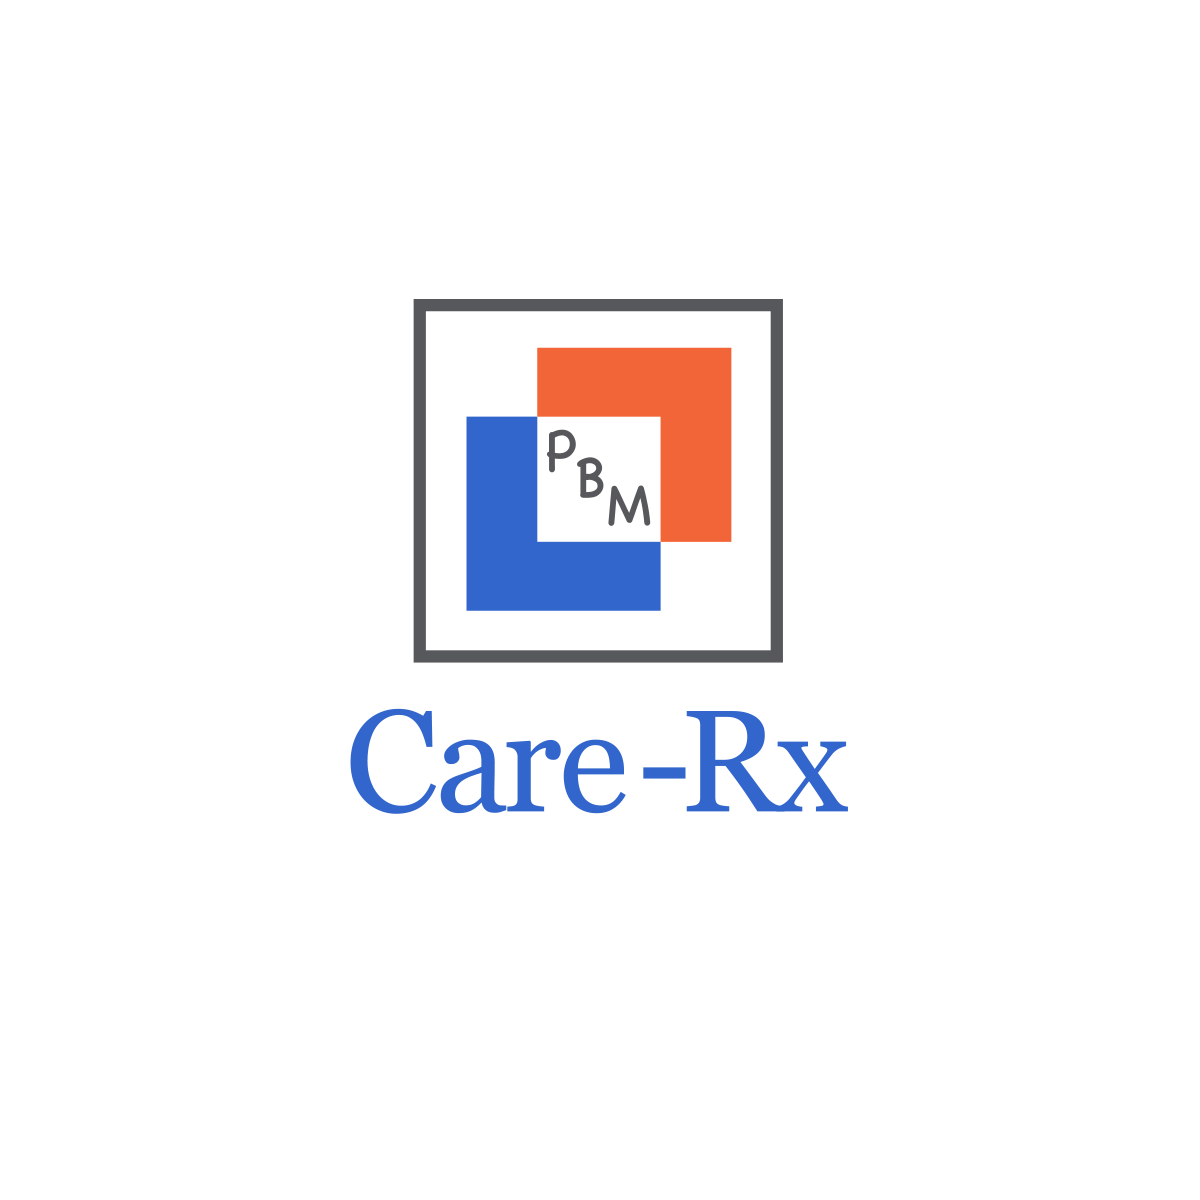 Care-Rx serves as a trusted pharmacy advisor in the PBM industry.